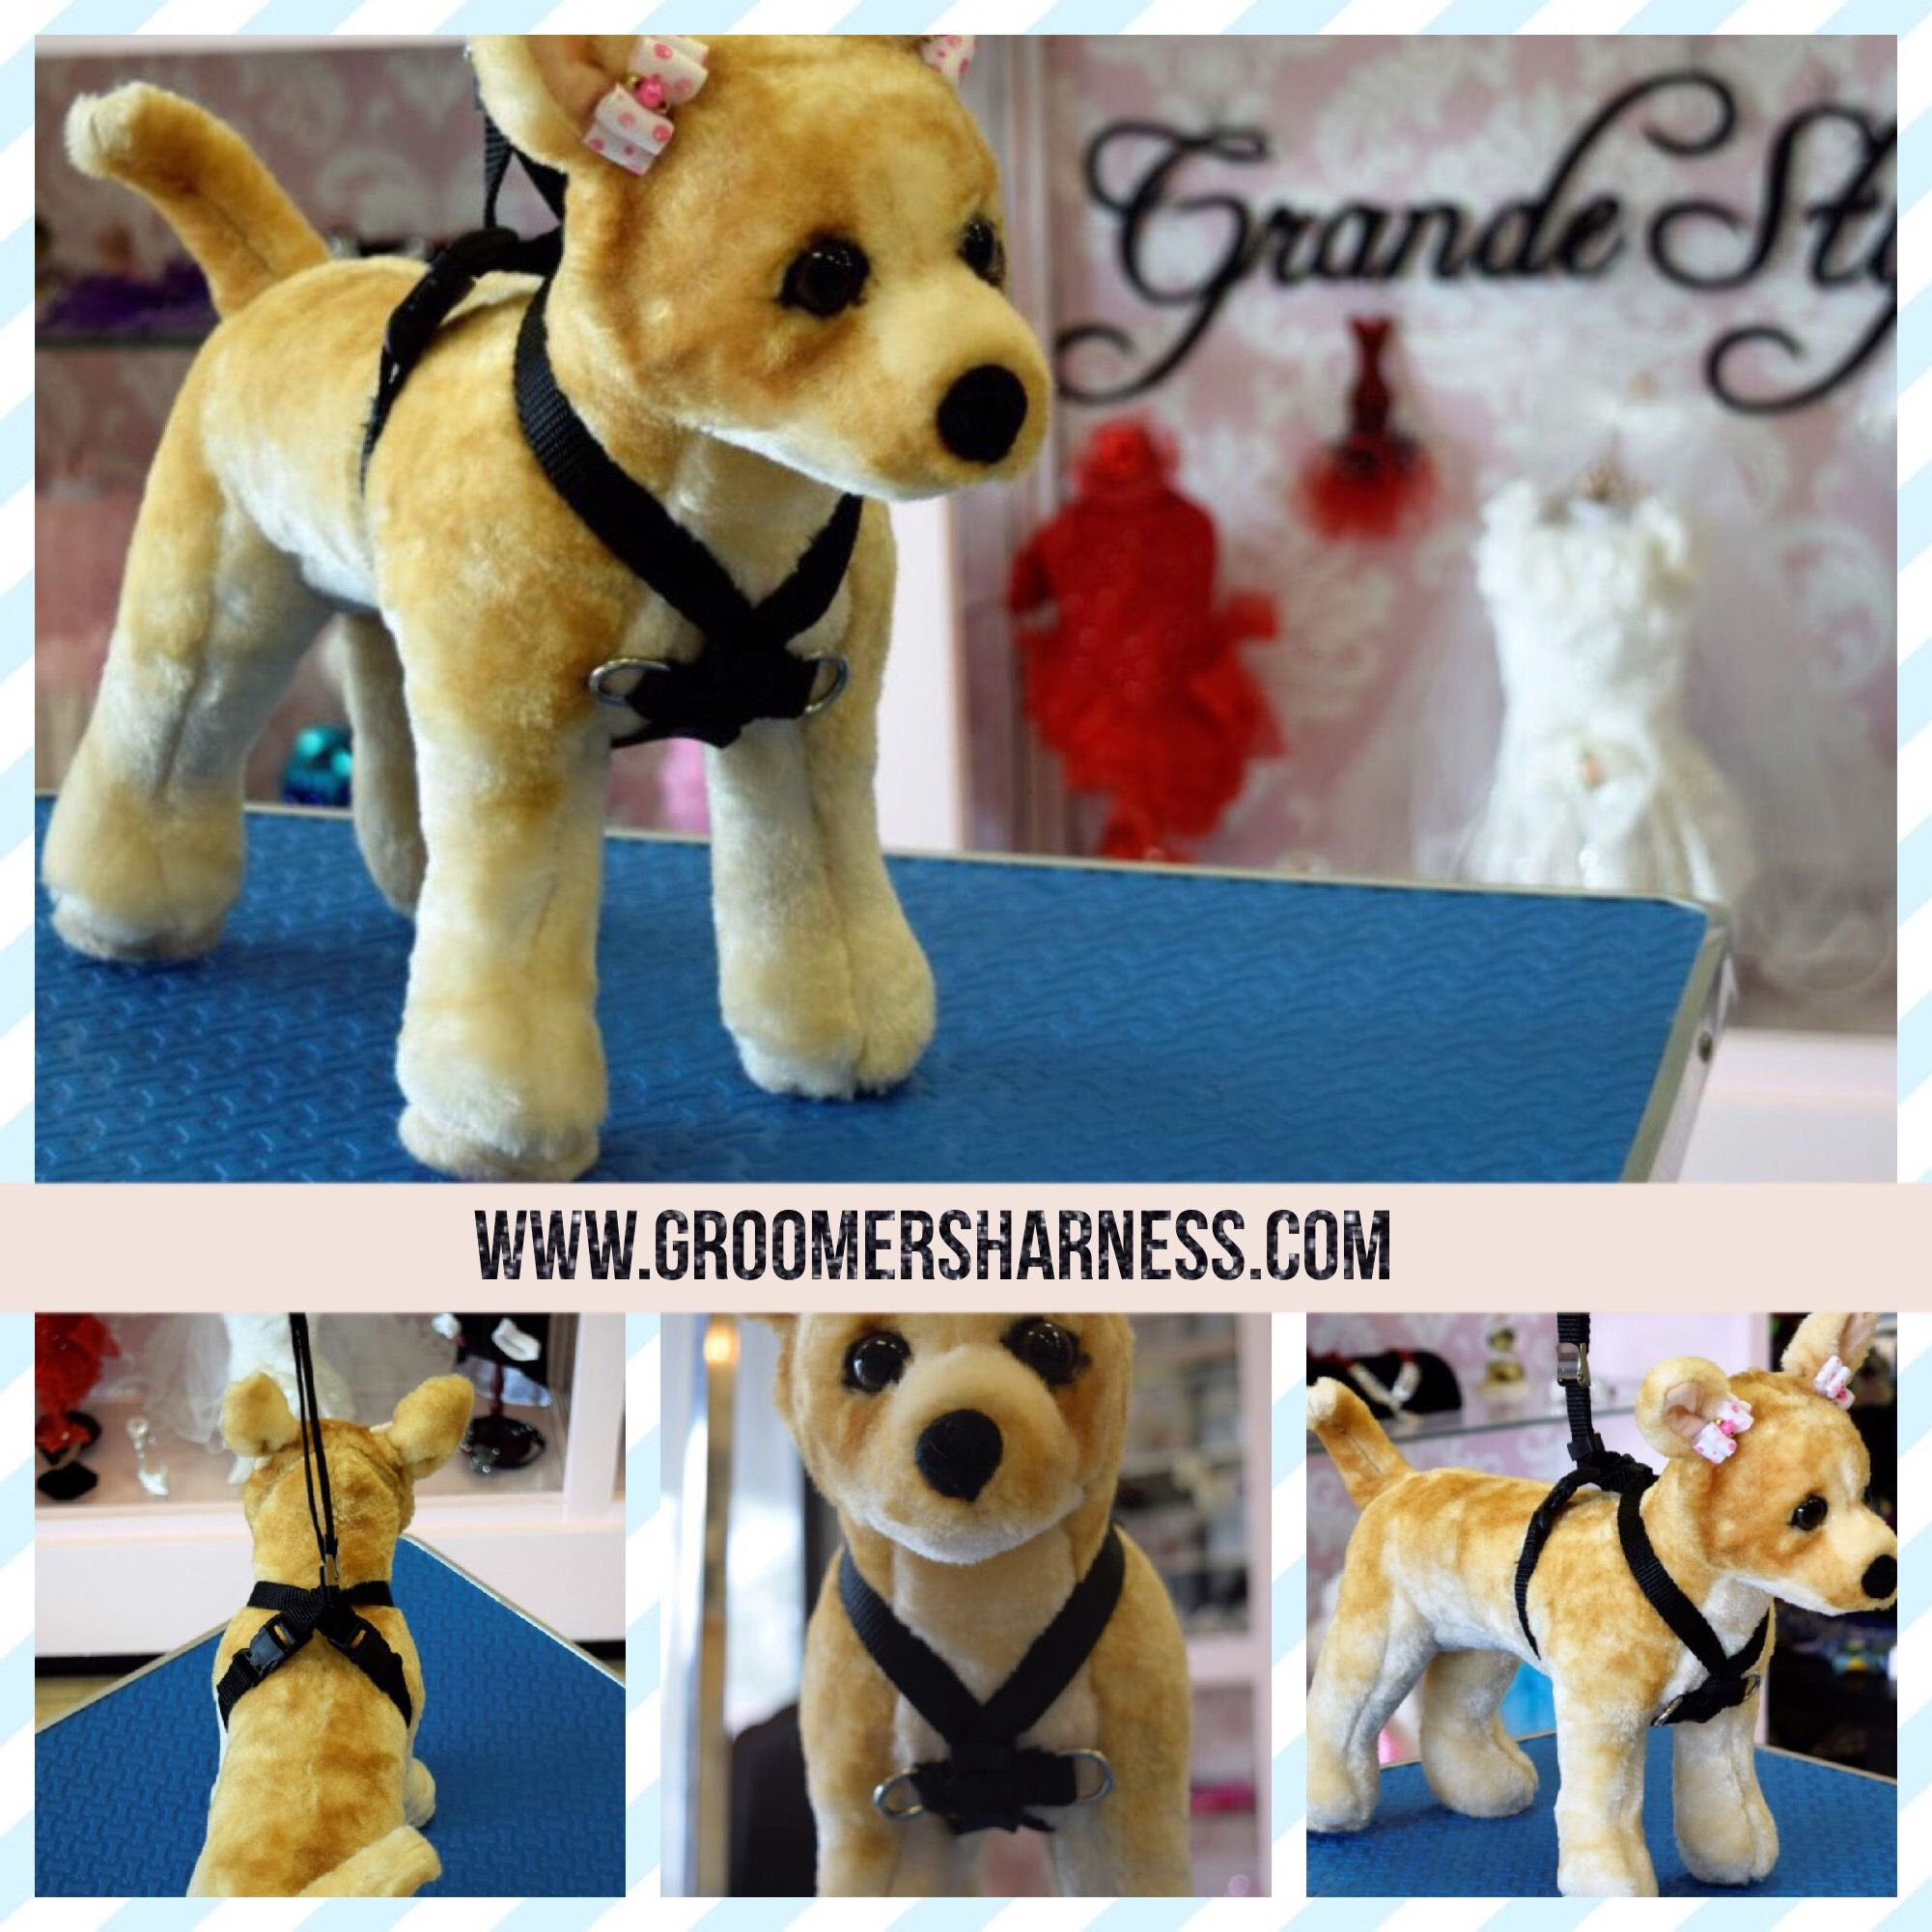 Groomers Harness The Anchor Dog Grooming Harness Dogs Dog